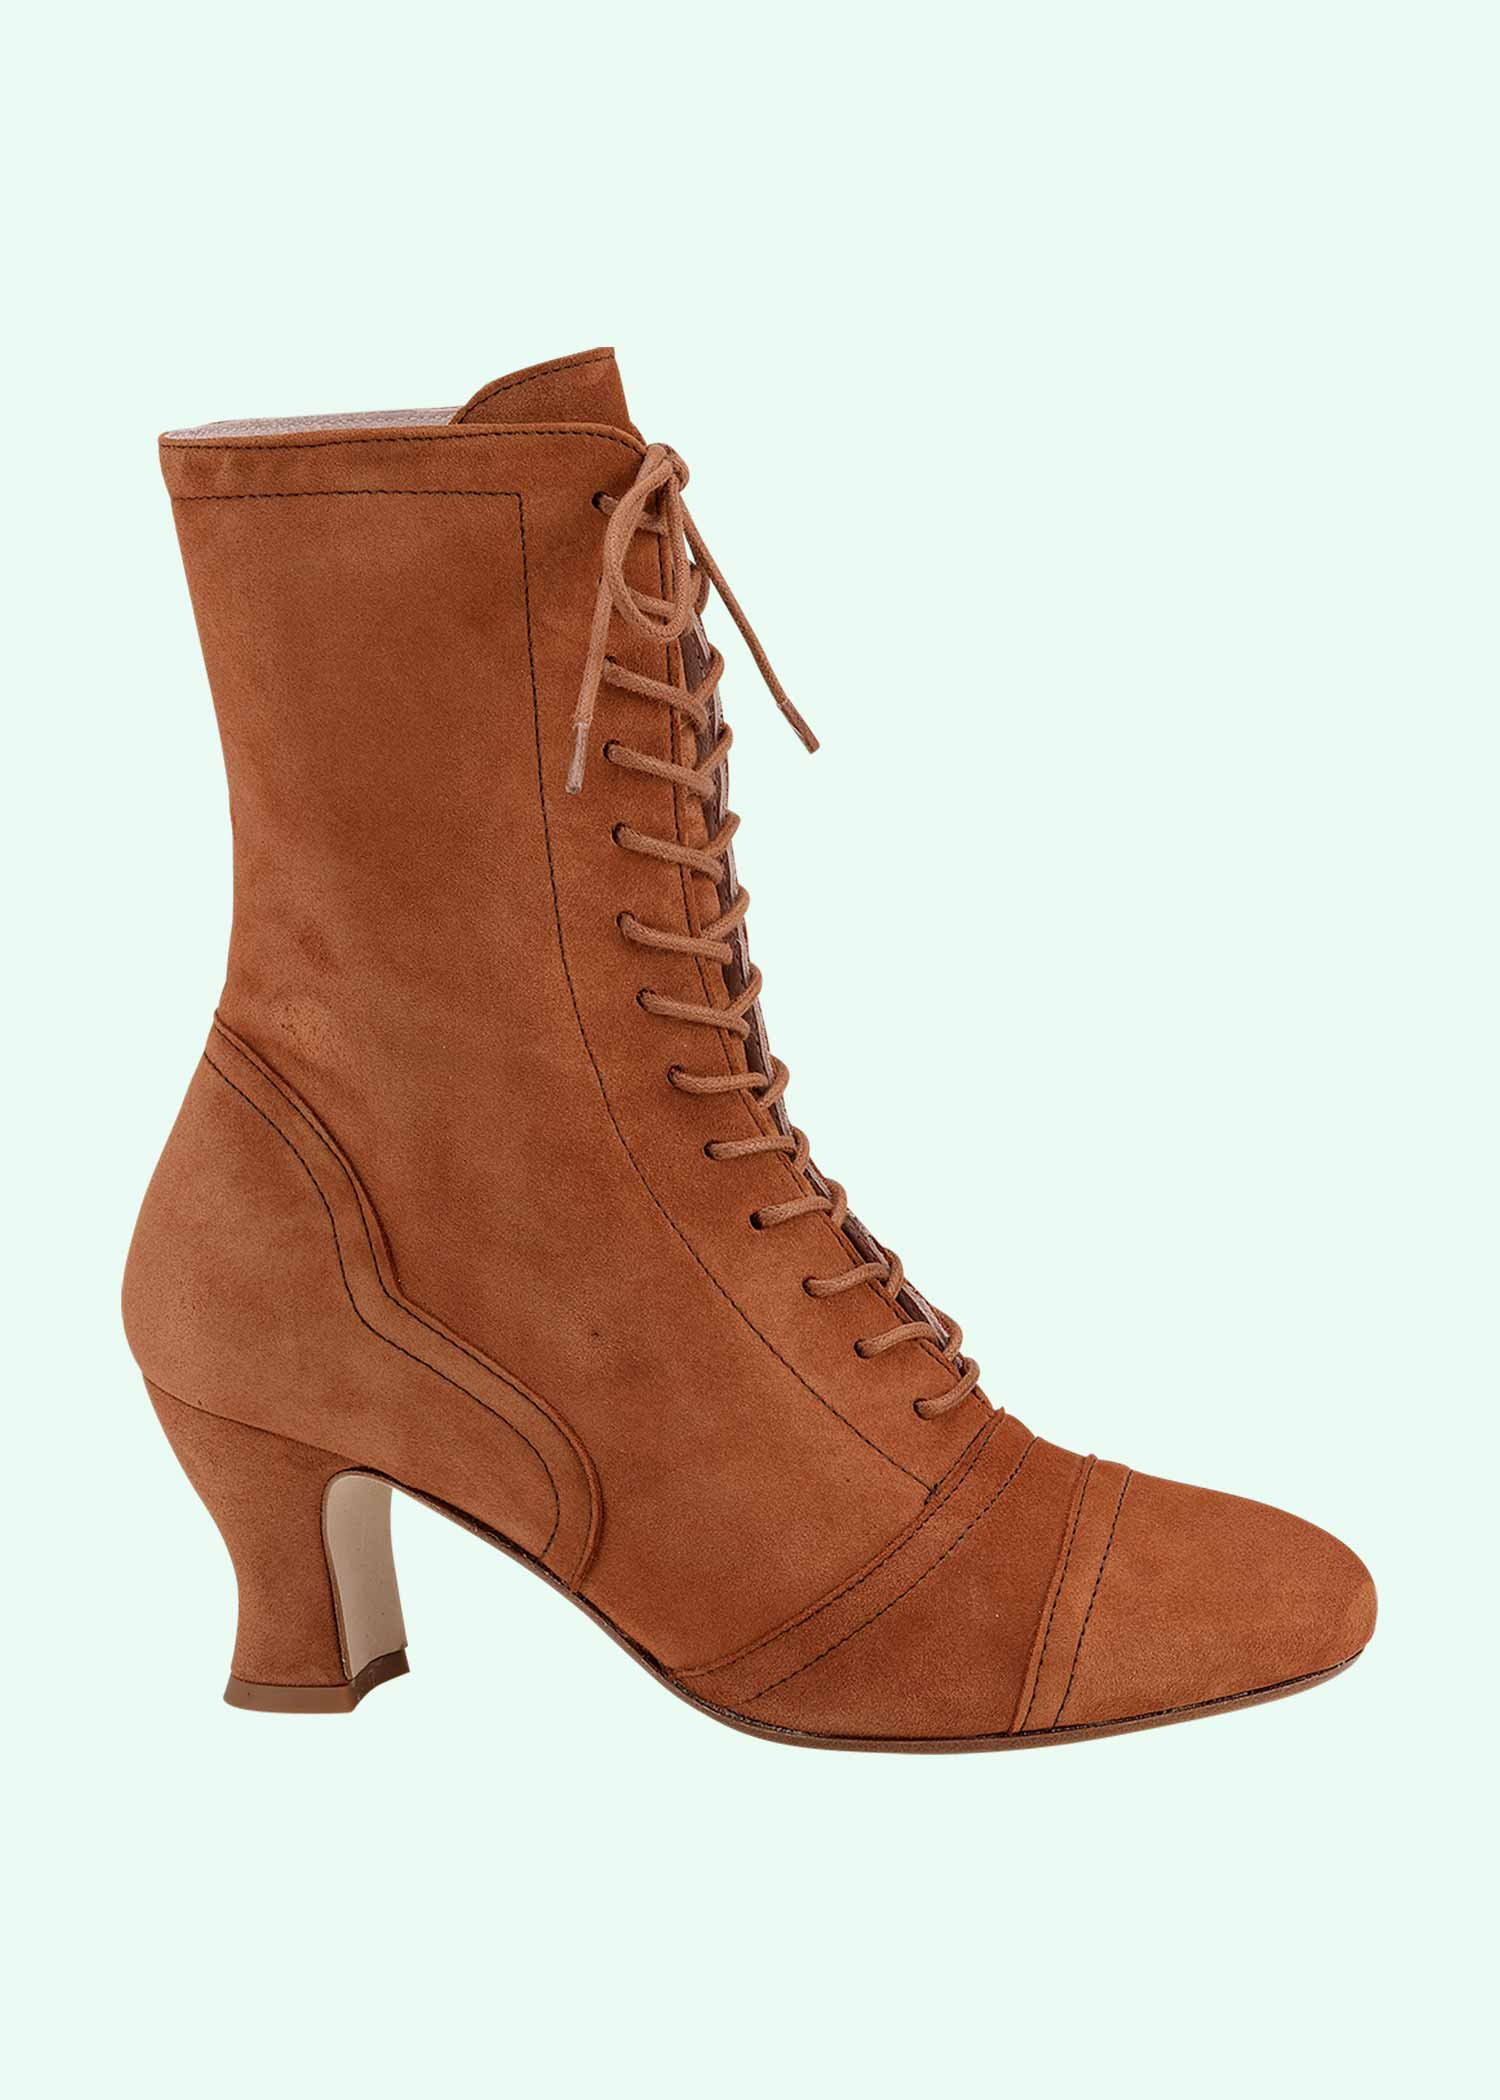 Vintage inspired suede boots in brown from Miss L Fire